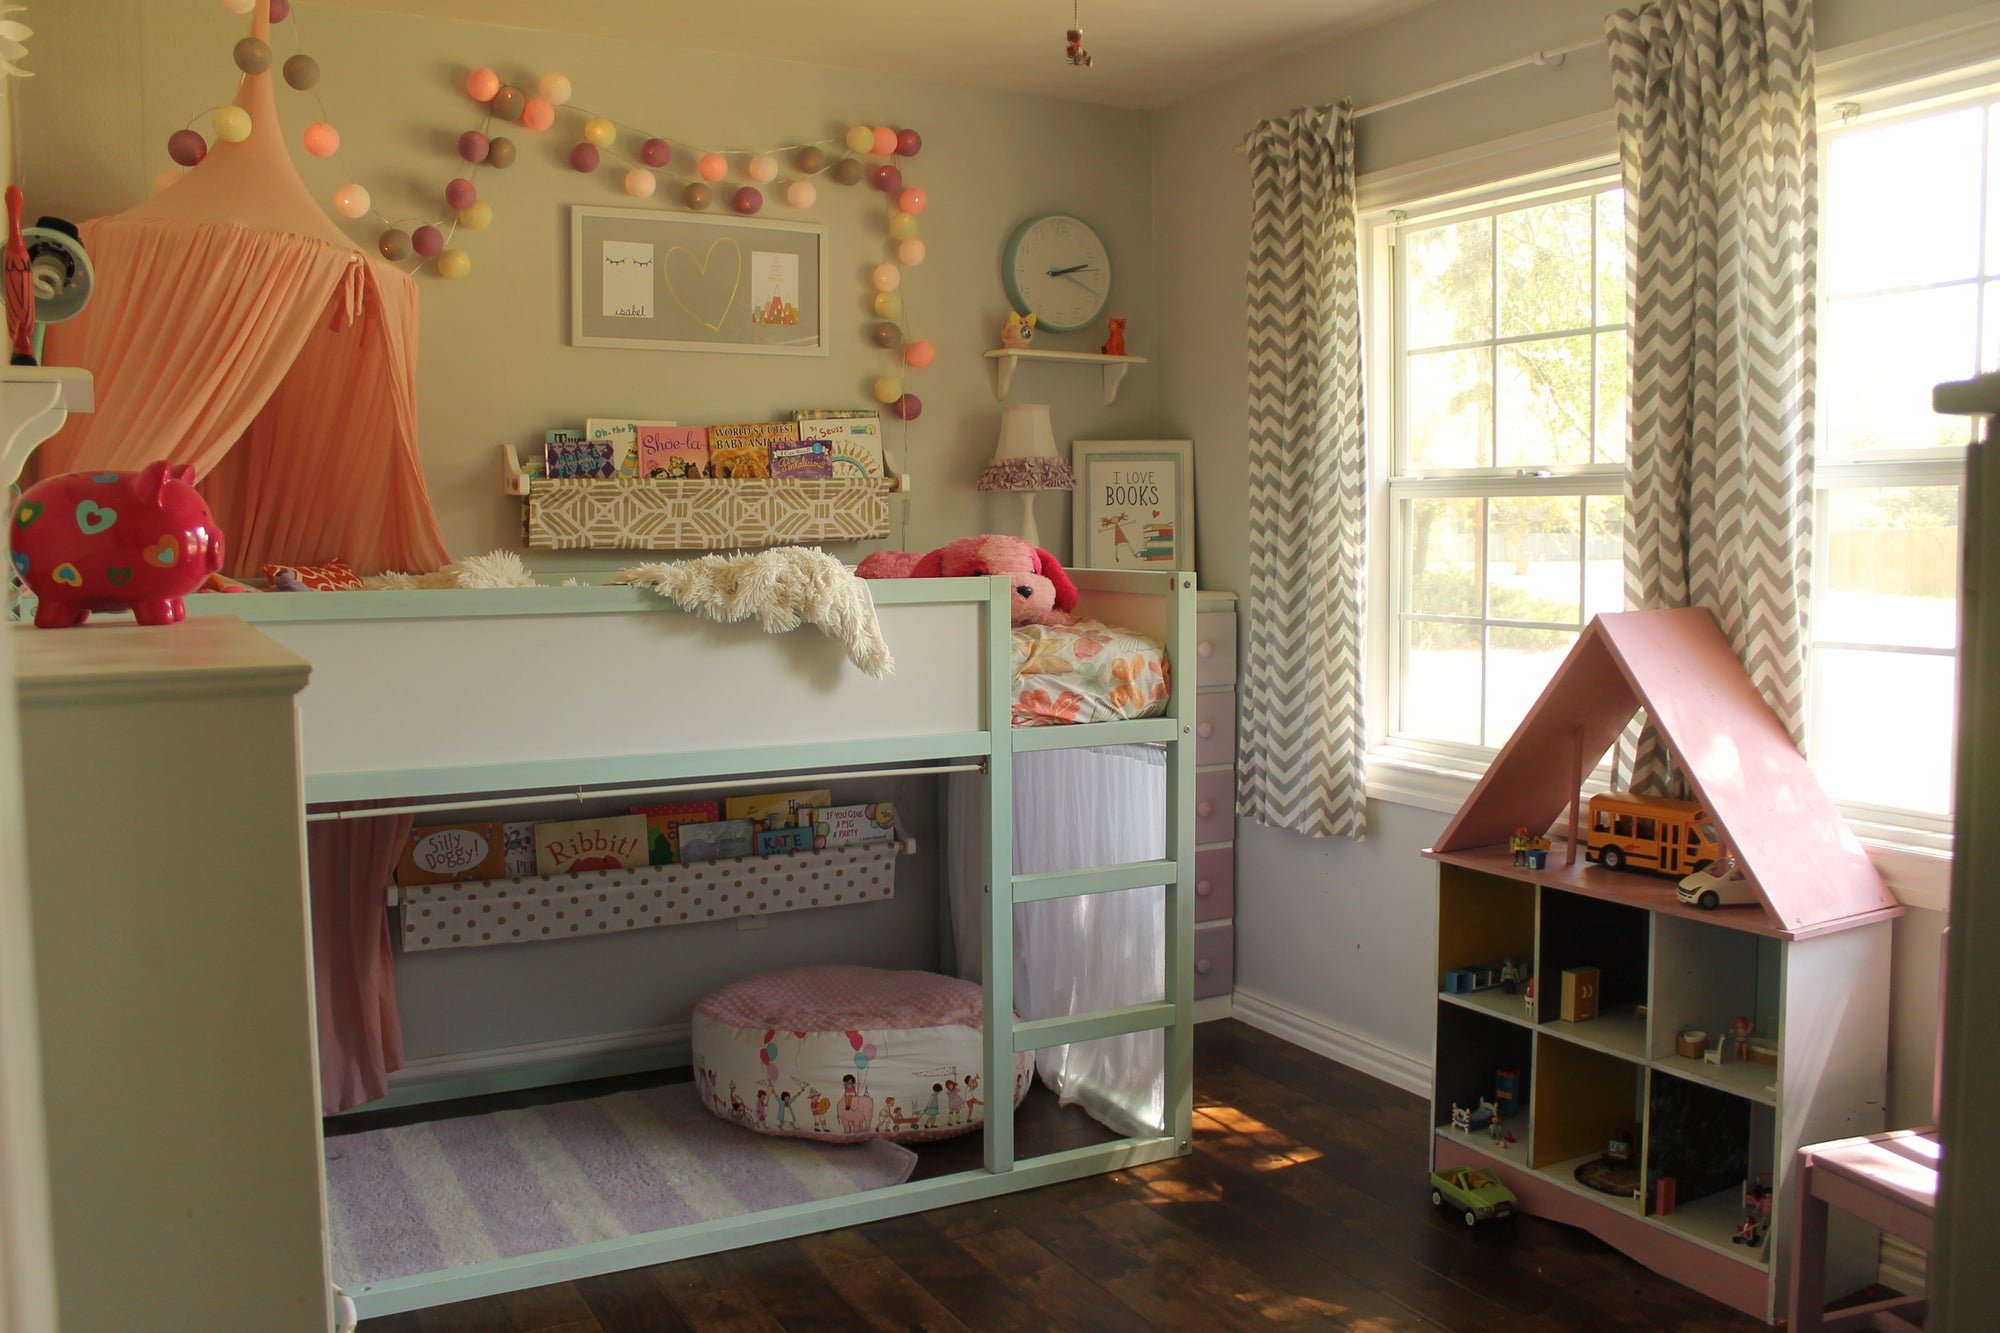 Kids Room Inspiration - for young girl